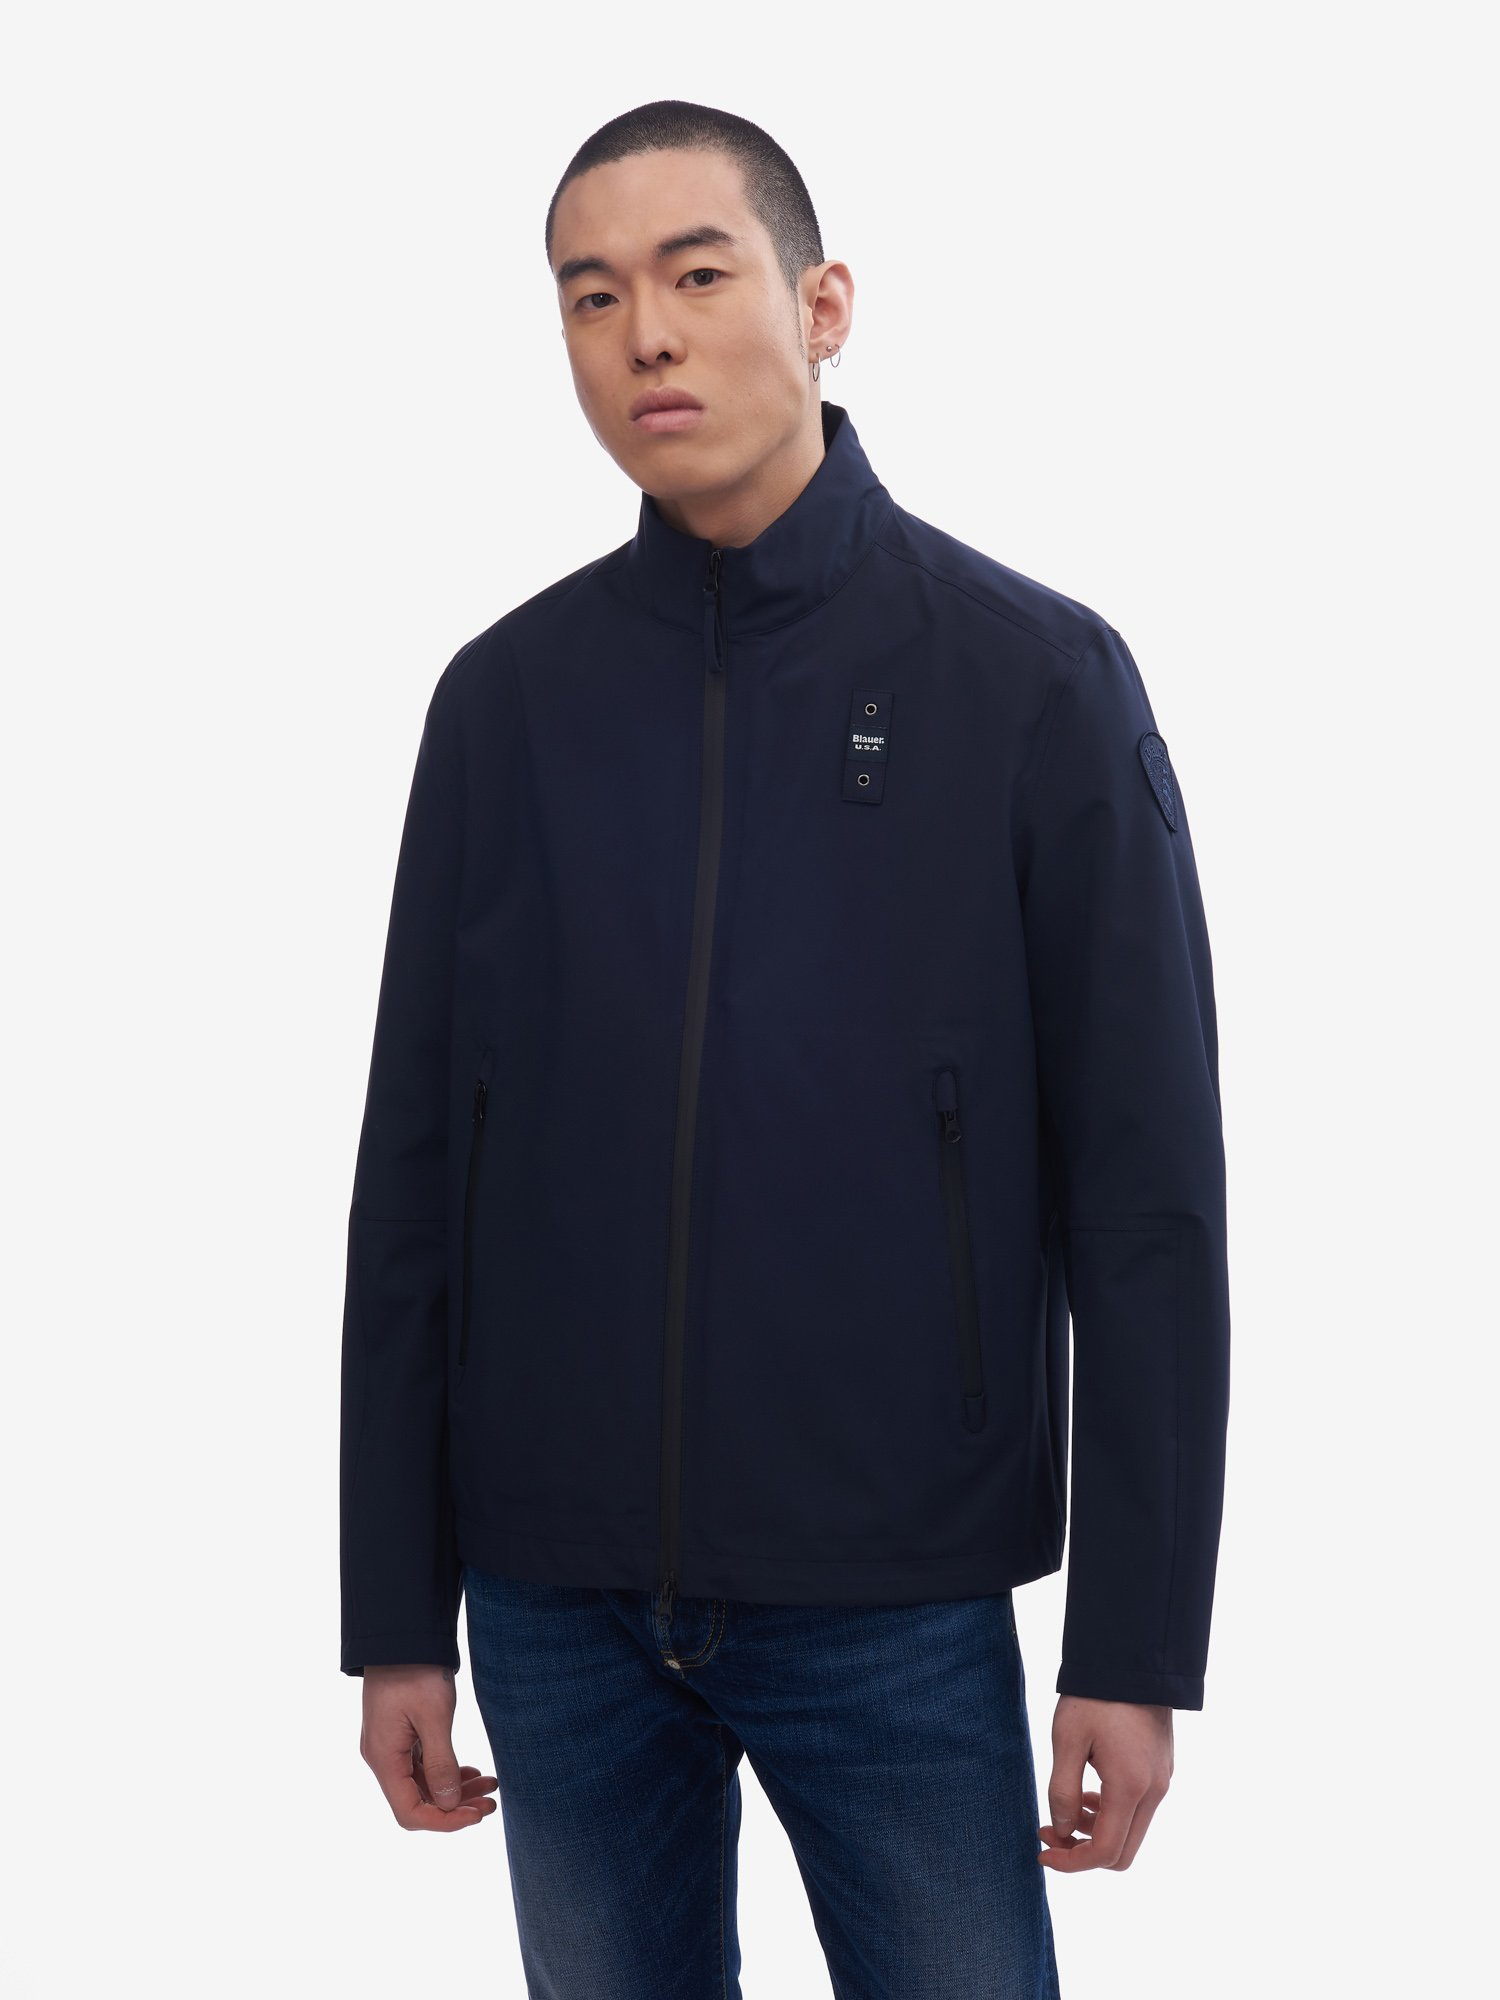 MAXWELL JACKET WITH COATED ZIP - Blauer